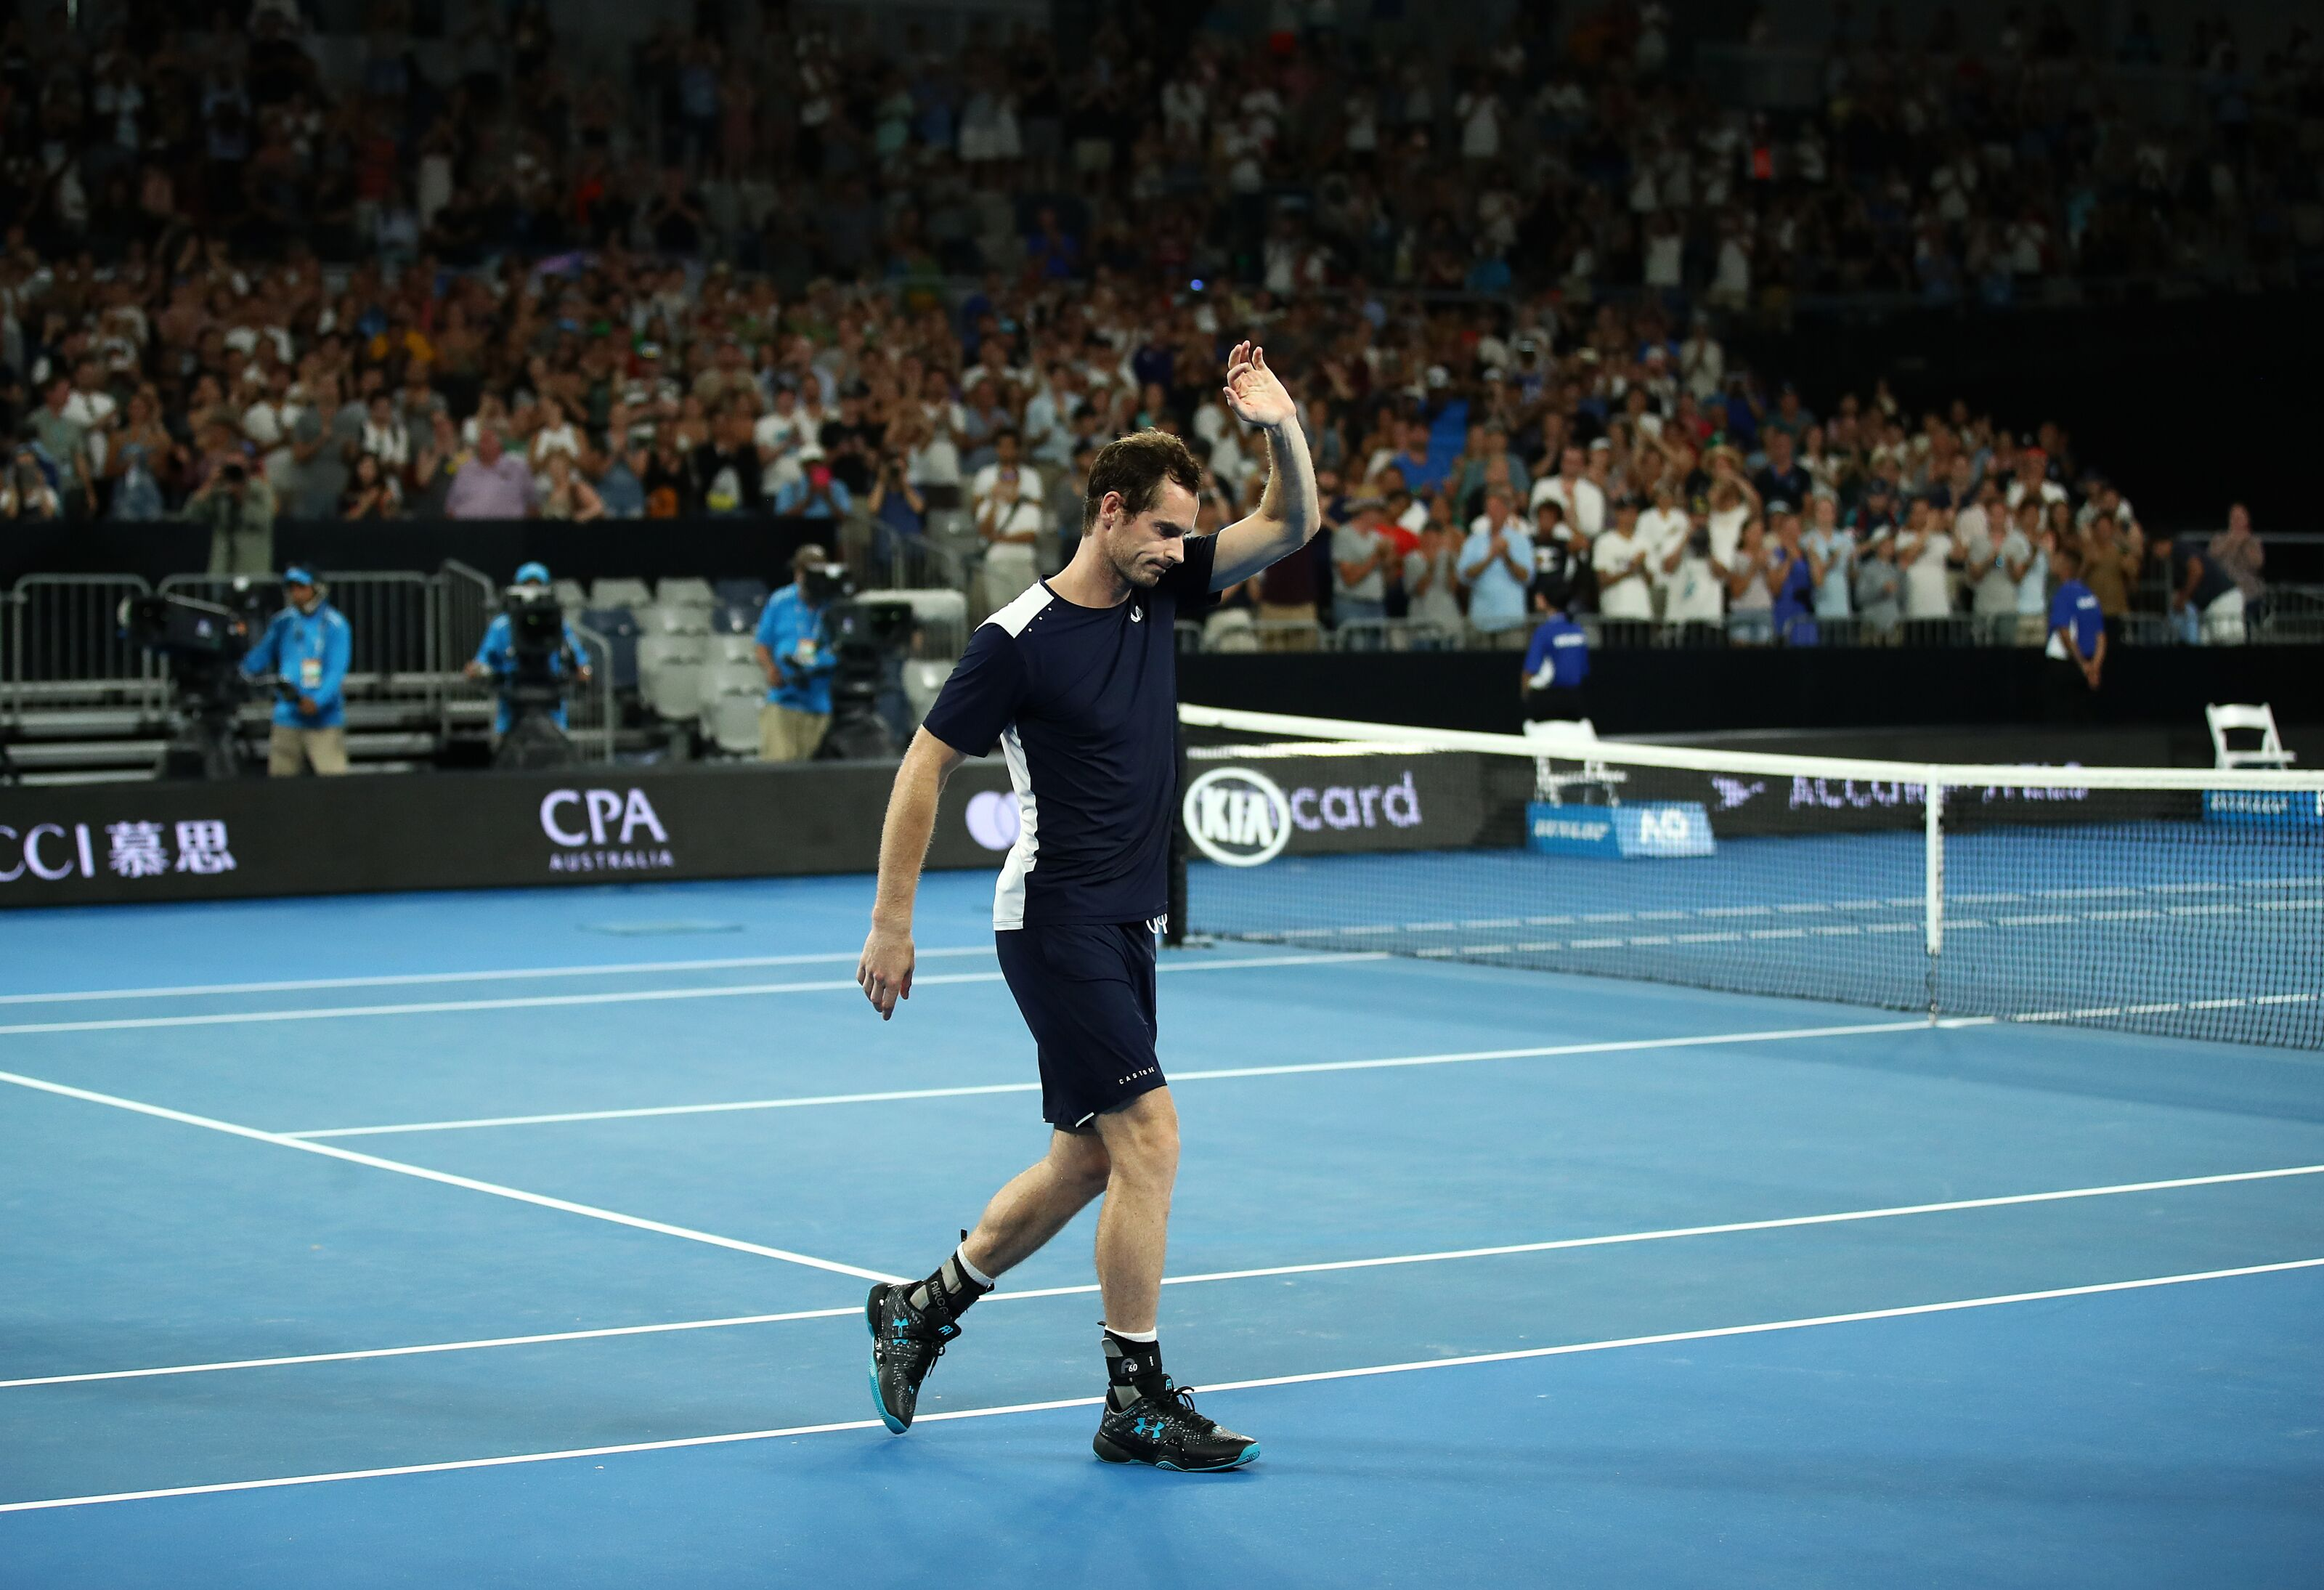 a52f8759d69 RANKED  Top 10 Greatest Andy Murray Tennis Matches Ever - Page 2